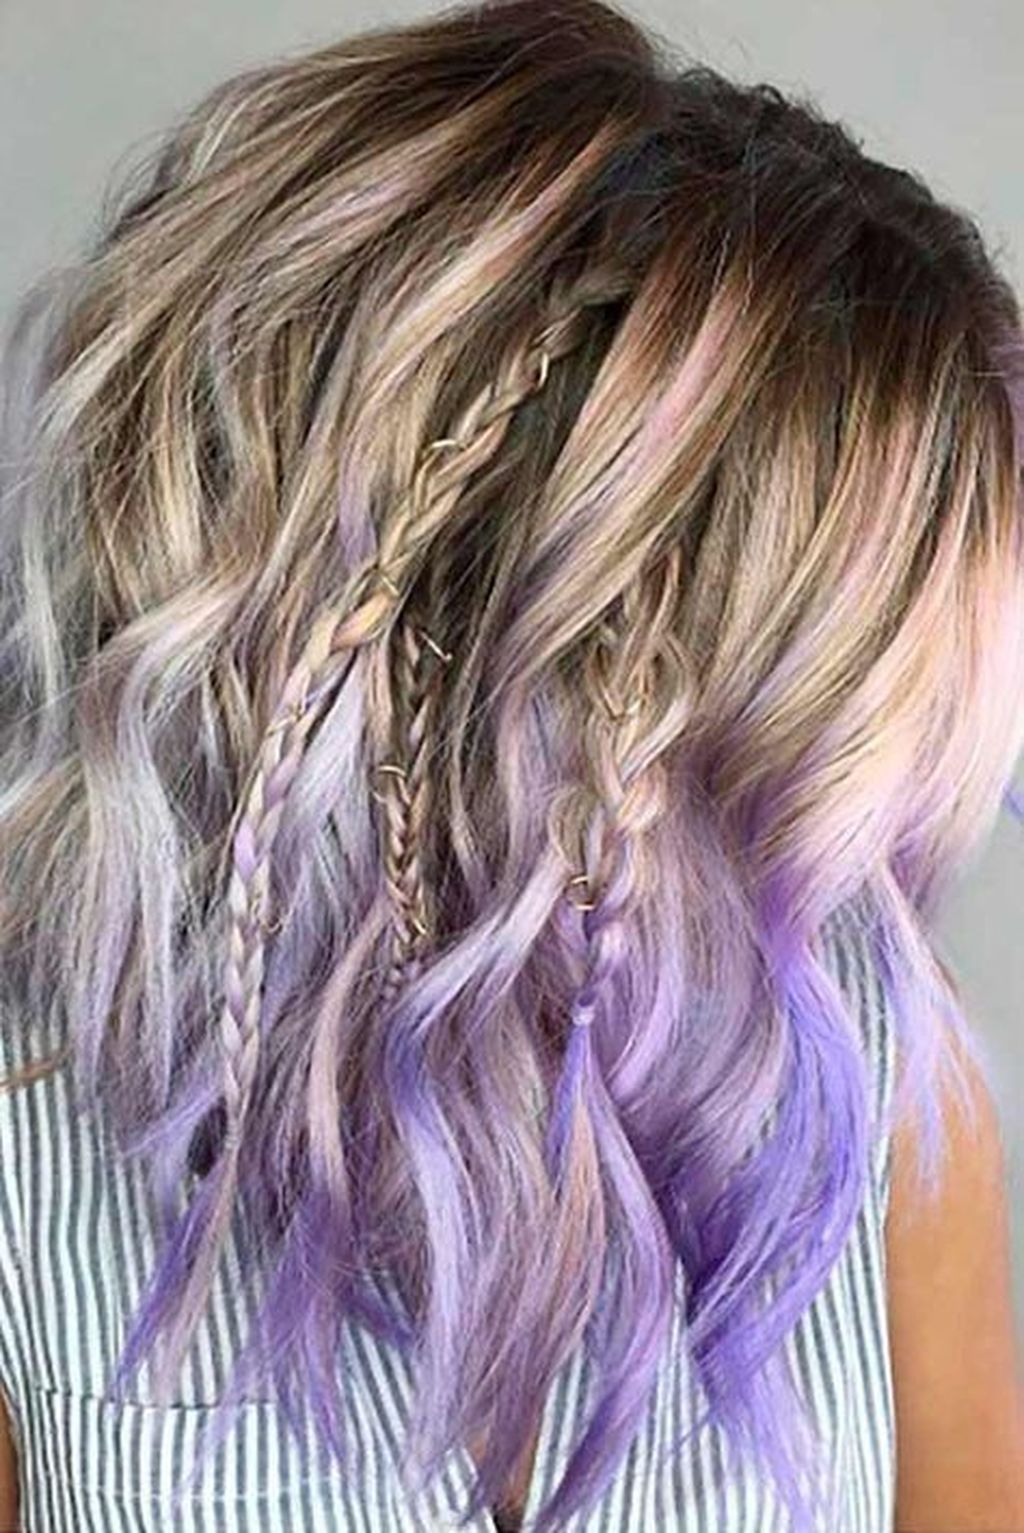 48 trendy ombre hair coloring you must try ombre hair color ombre 48 trendy ombre hair coloring you must try ombre hair color ombre hair and hair coloring solutioingenieria Gallery